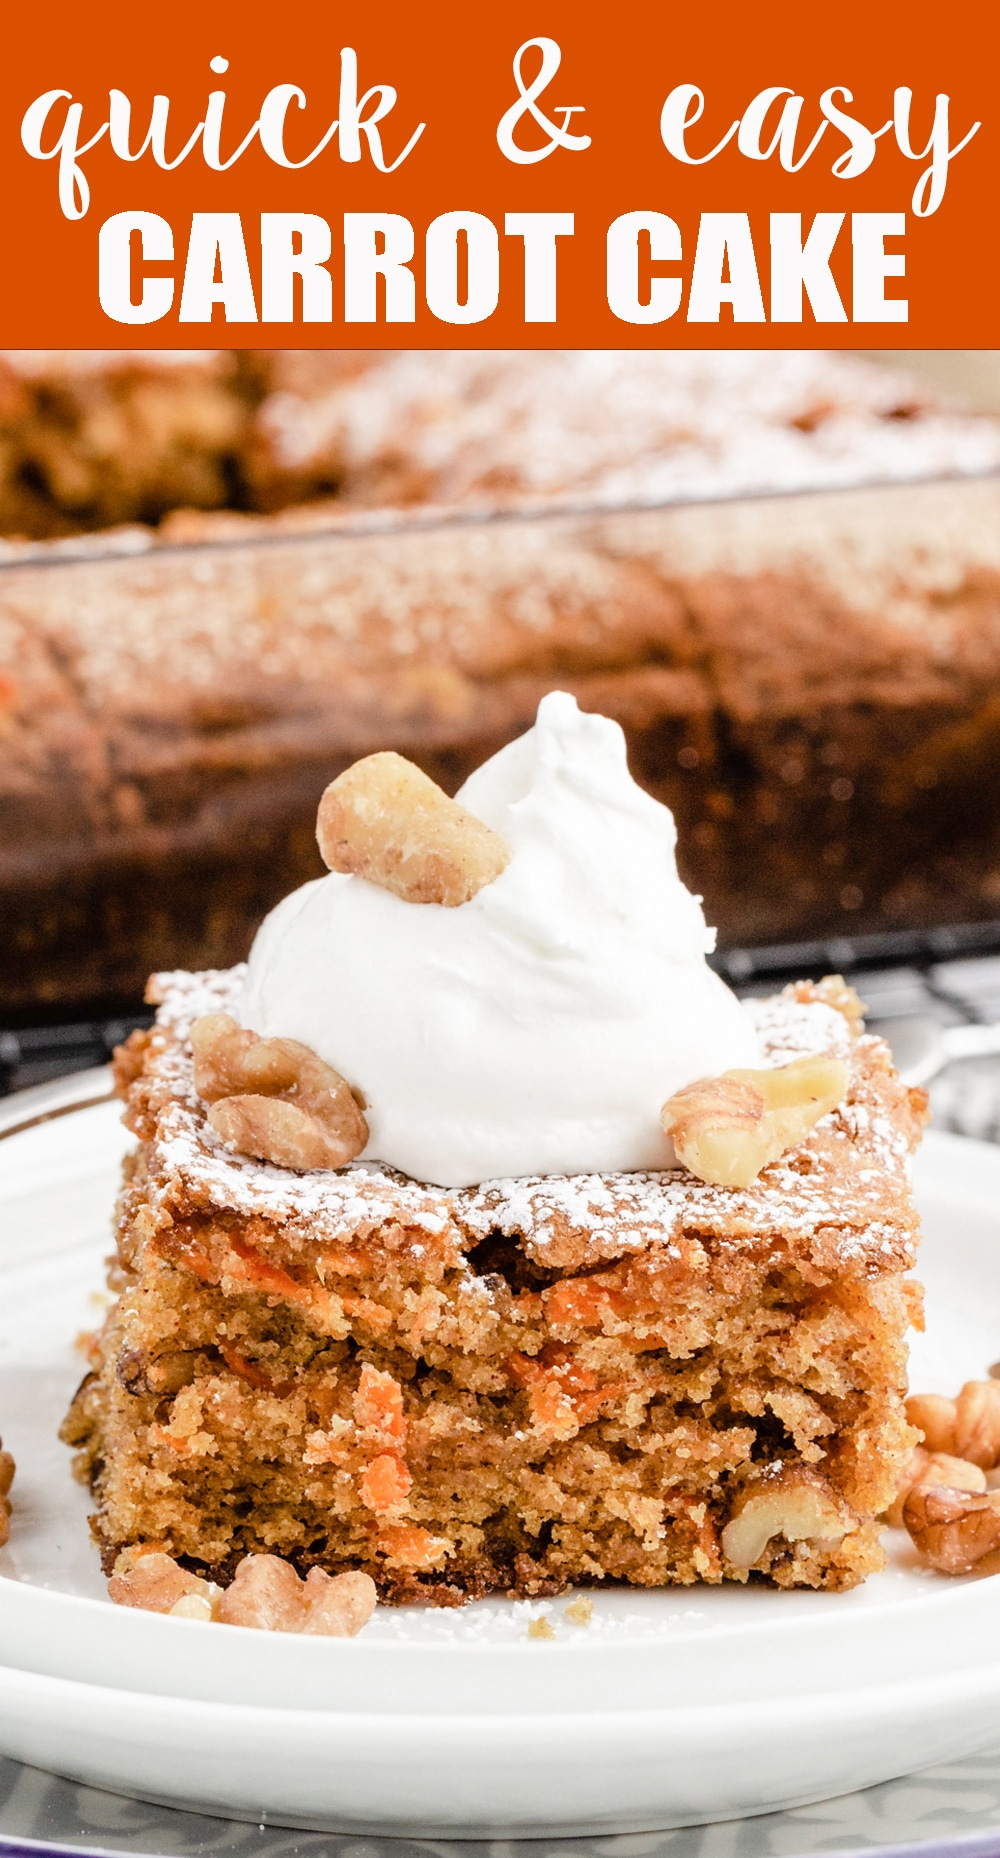 Easy 8x8 Carrot Walnut Cake perfect for dessert, breakfast or snack. This lightly sweetened cake needs no frosting and is loaded with walnuts. via @thebestcakerecipes